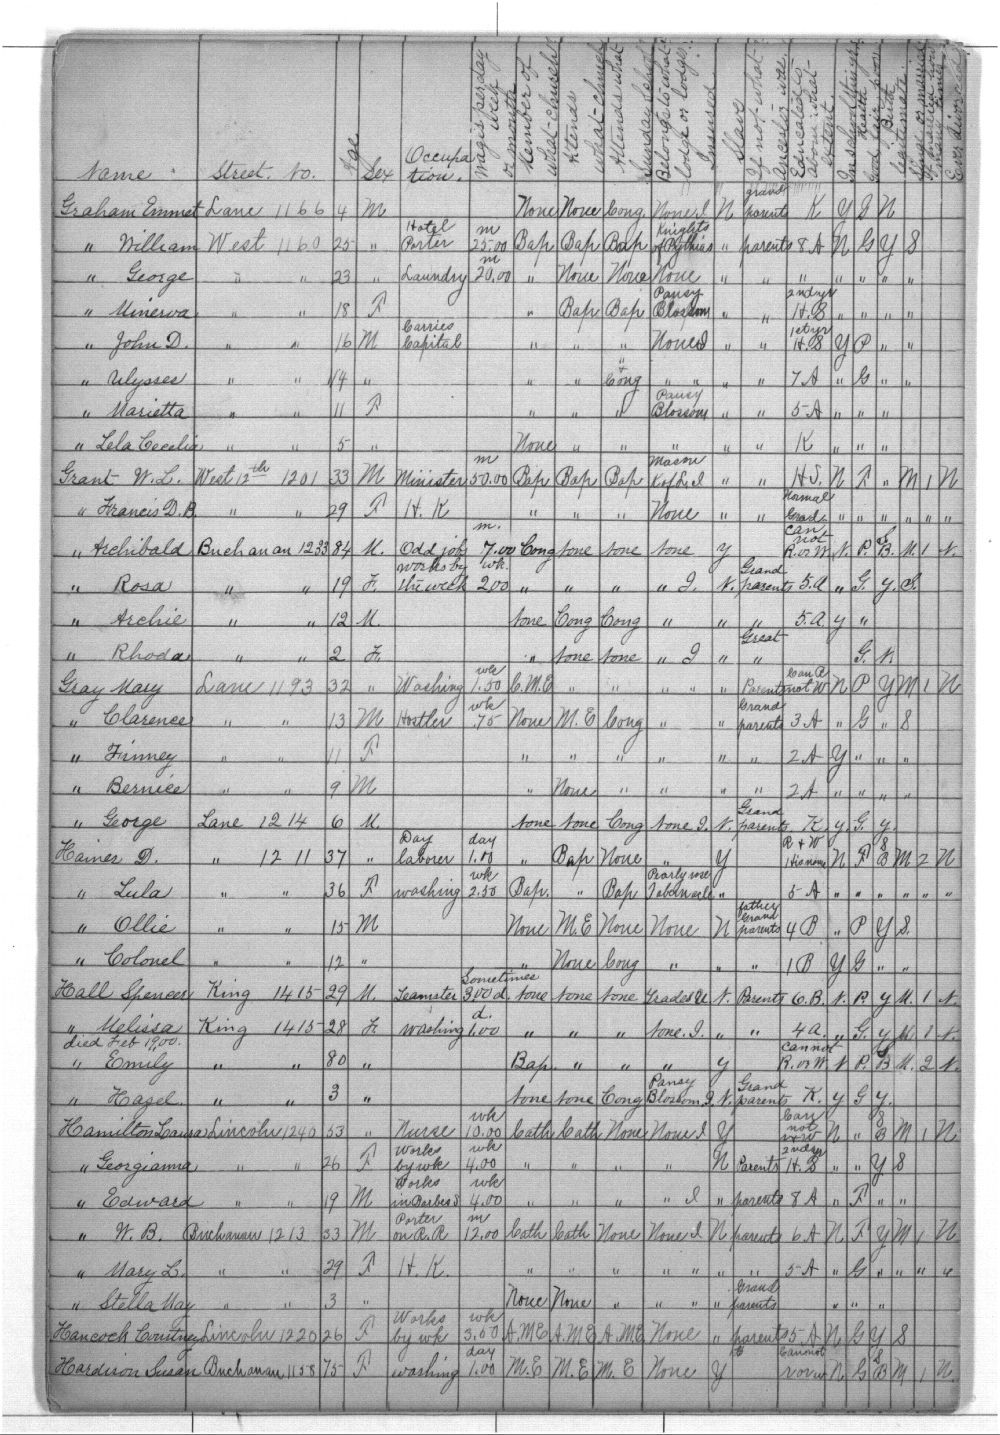 Tennessee Town census - 5